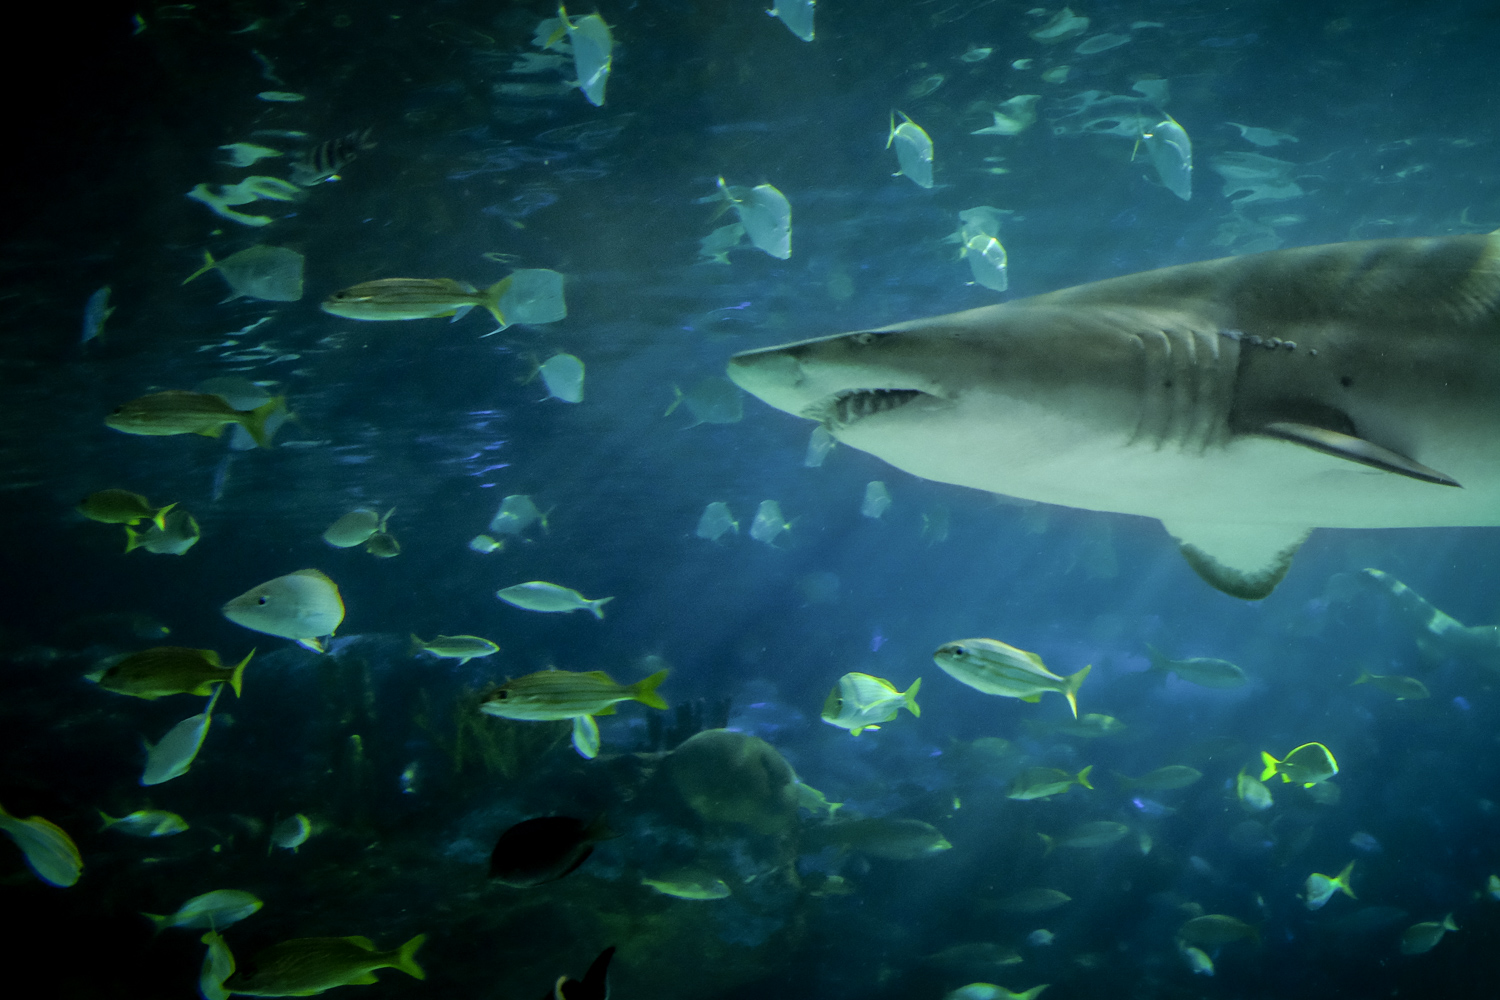 A photo of a shark swimming with fish. How to Take Clear and Creative Photos at Aquariums